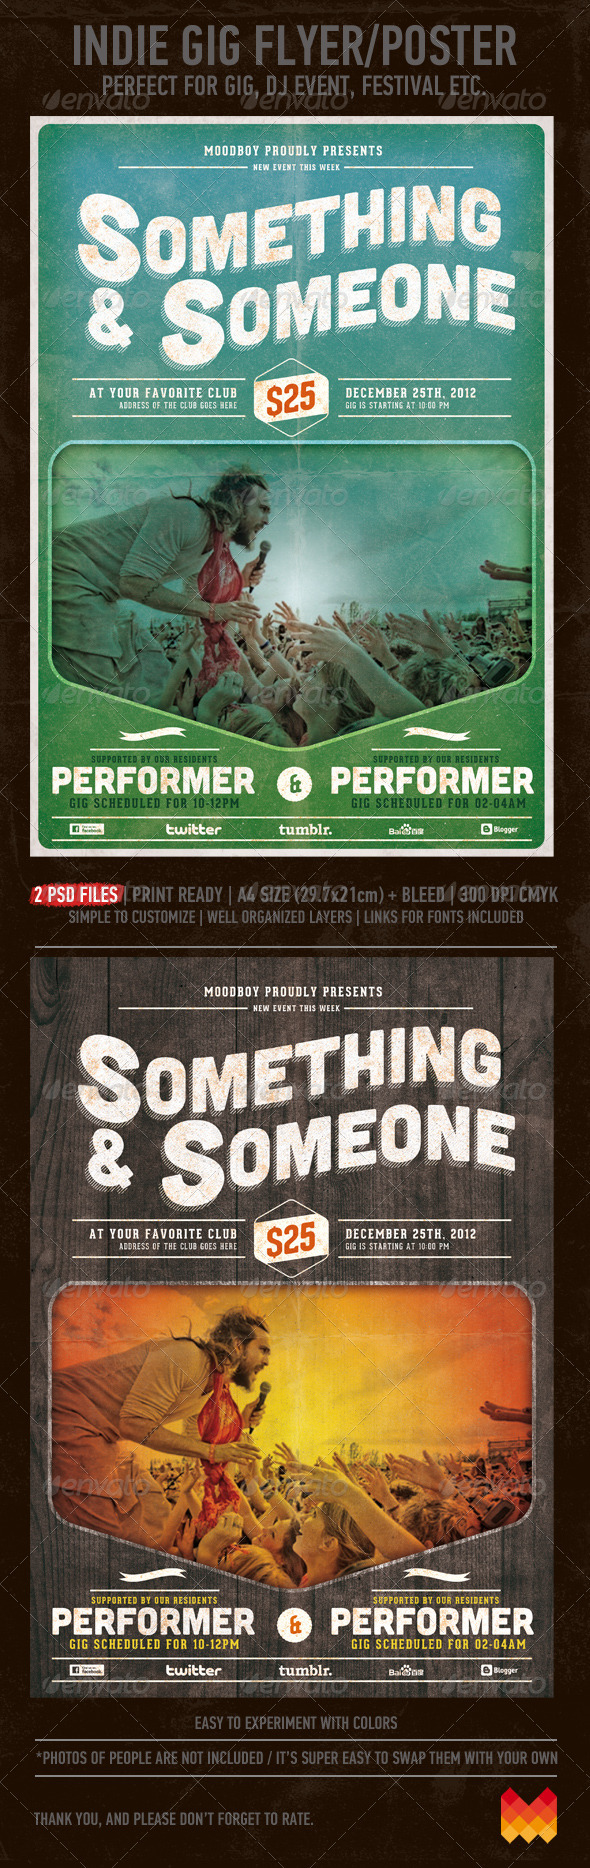 GraphicRiver Indie Gig Flyer Poster 3664051